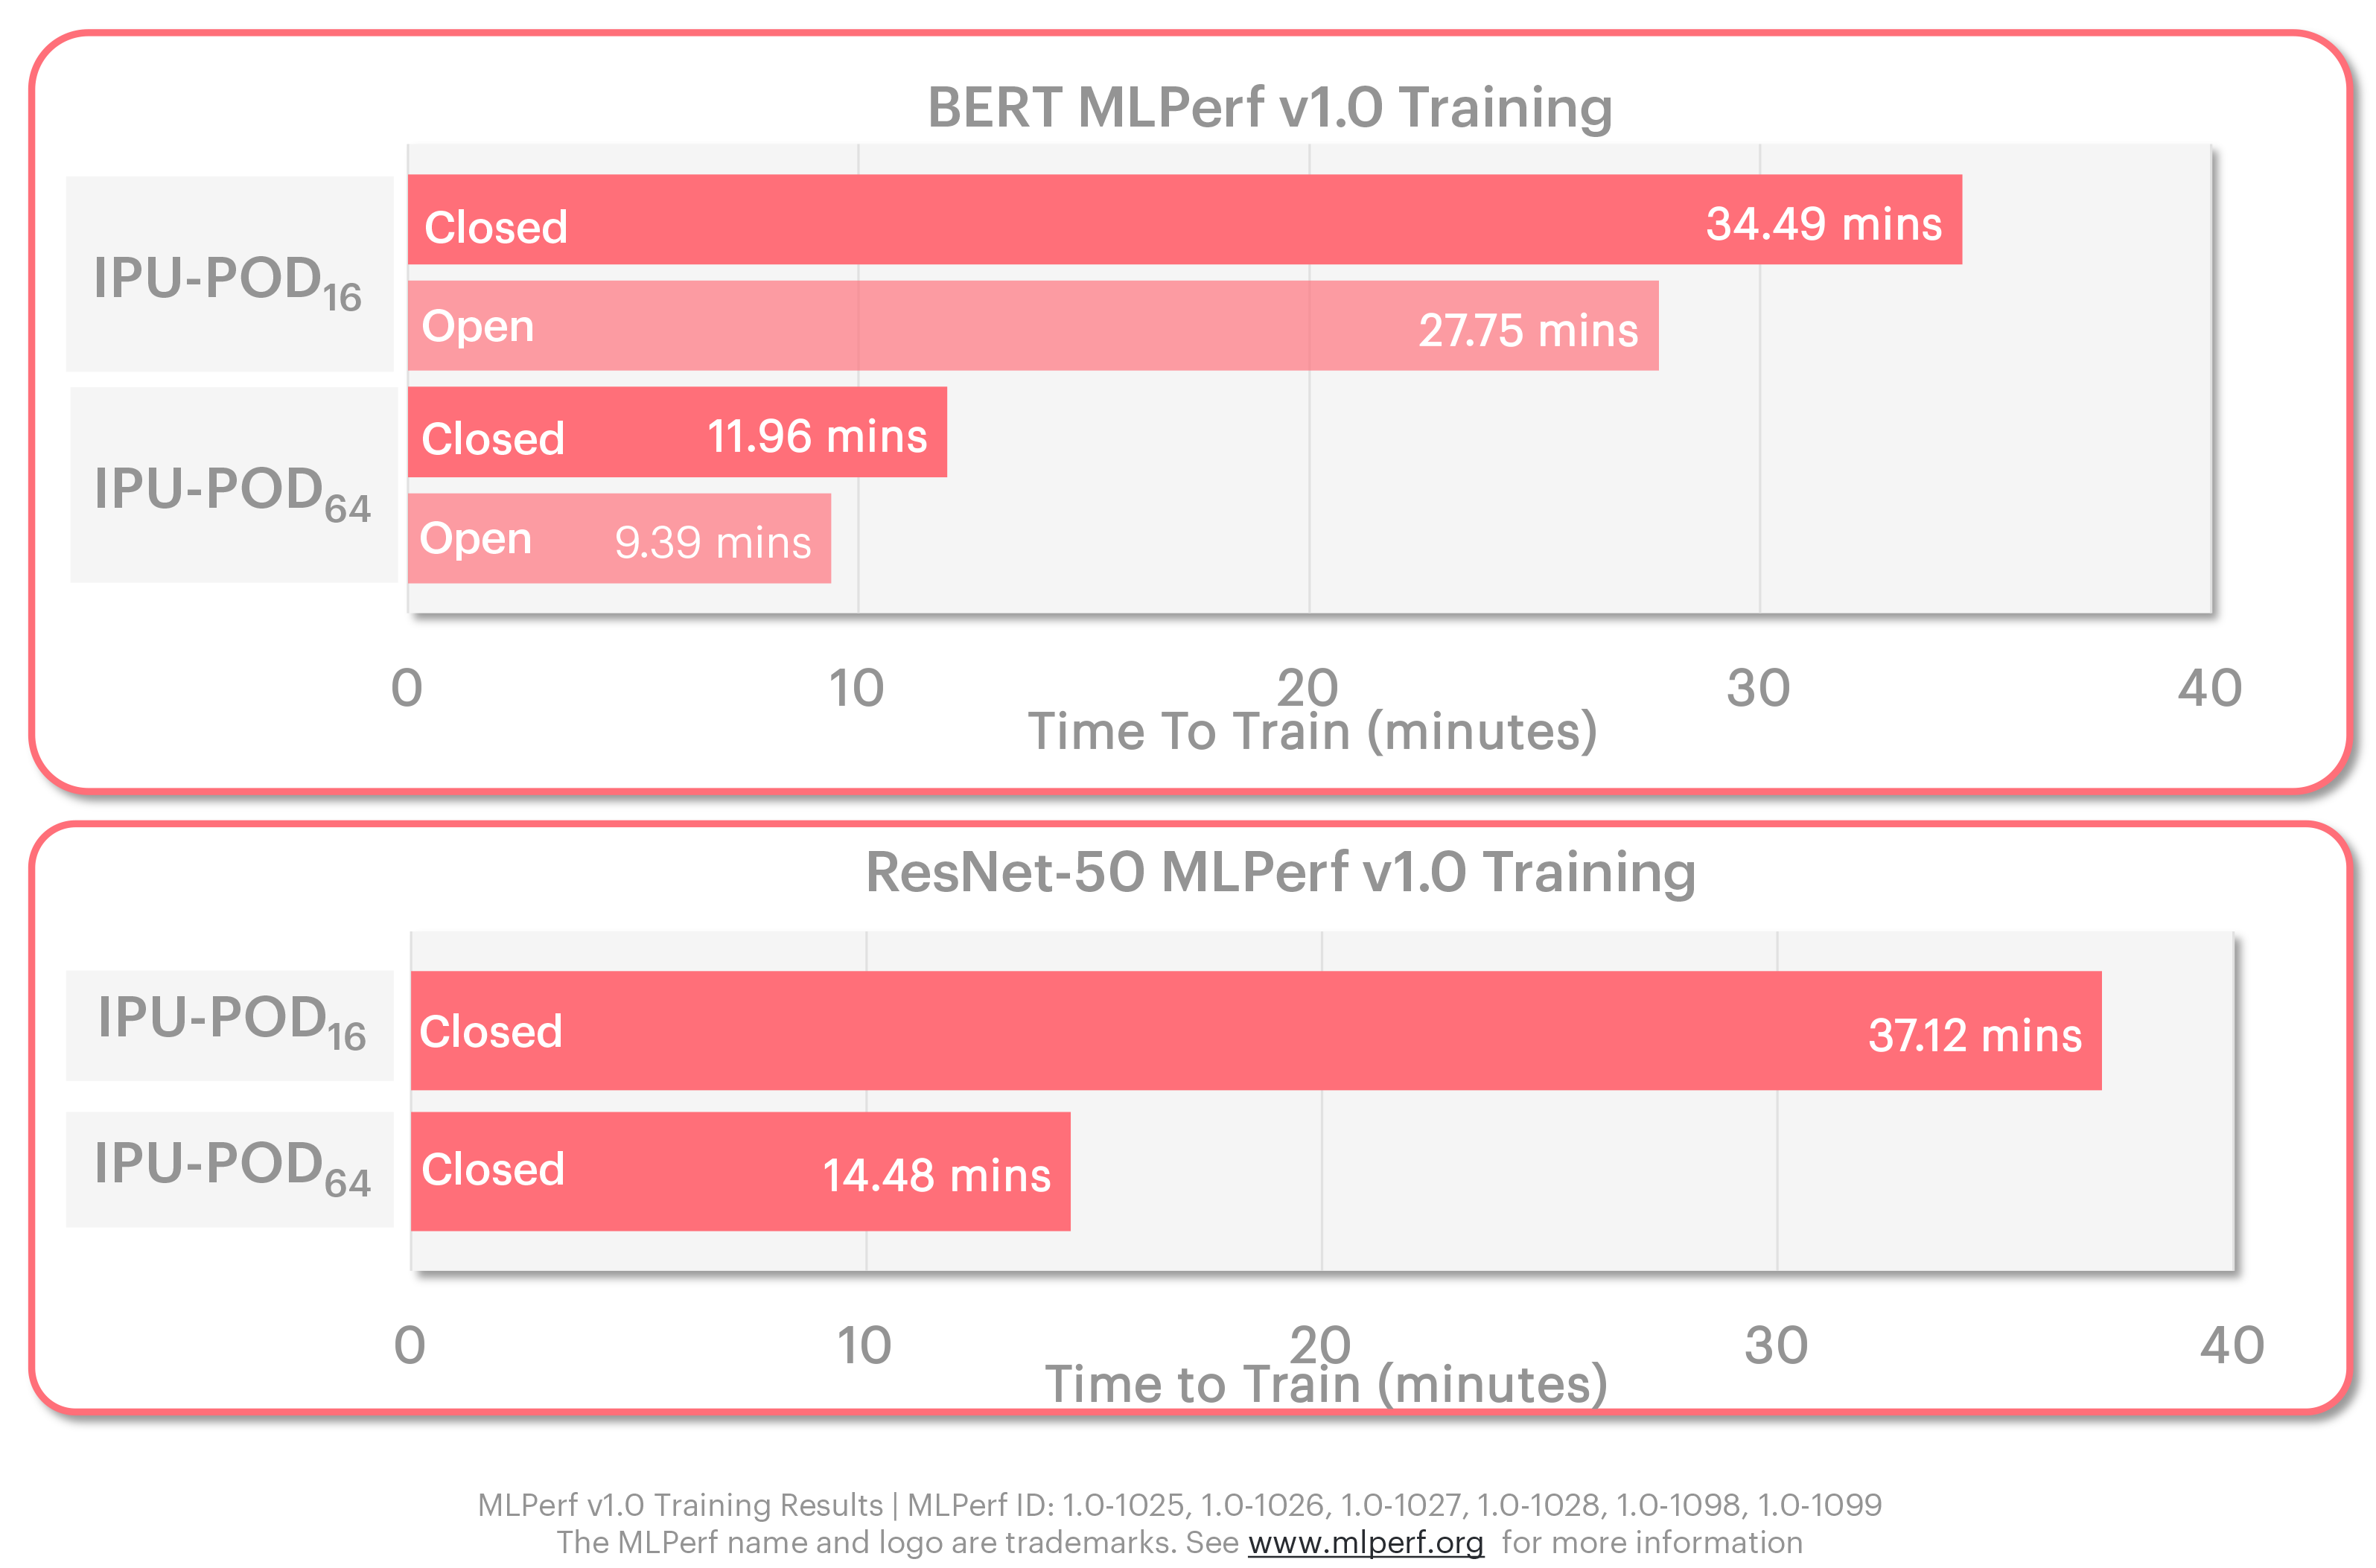 Graphcore MLPerf results open and closed divisions